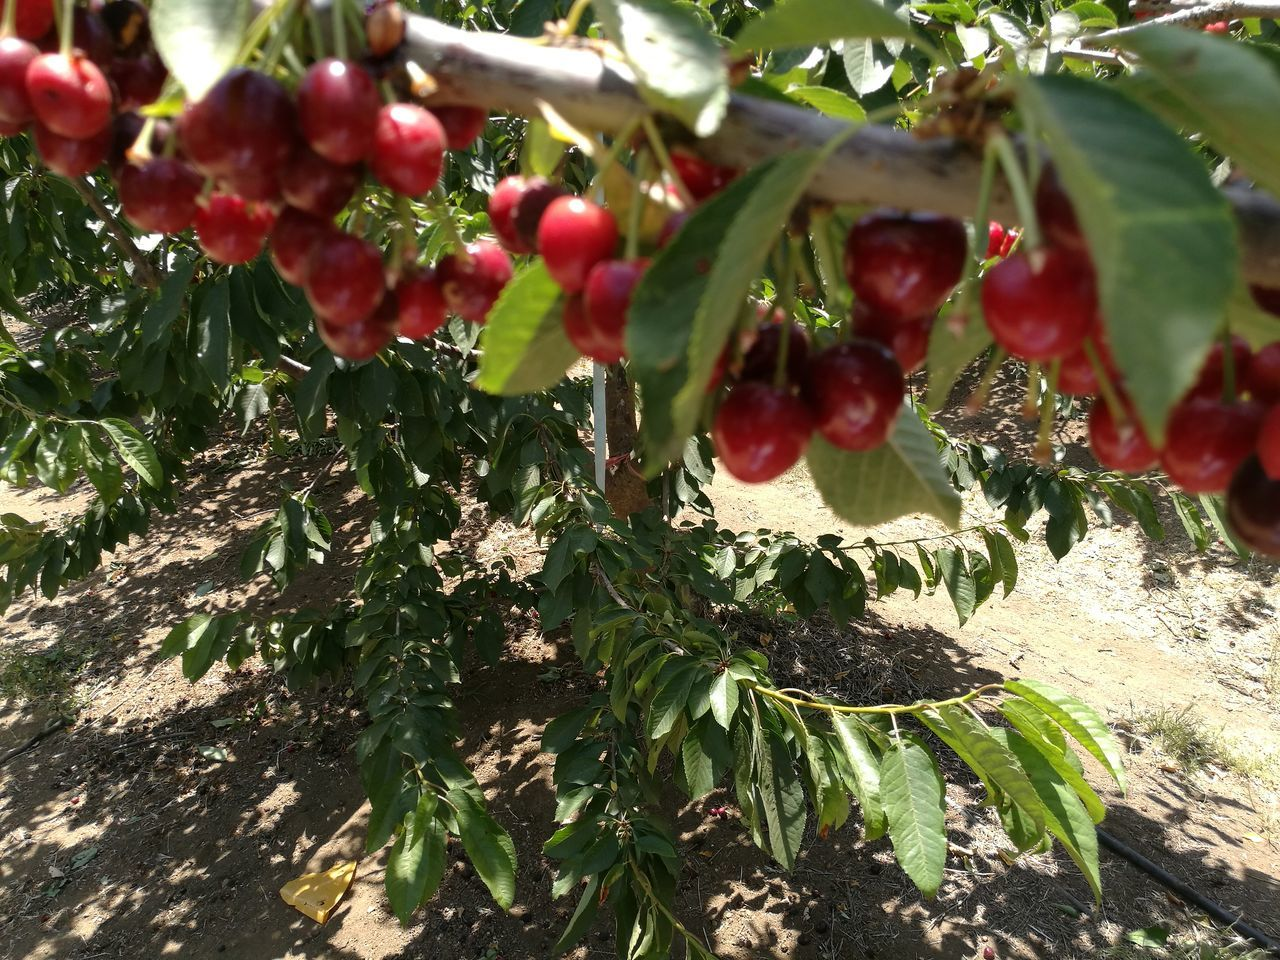 fruit, growth, food and drink, tree, red, leaf, nature, day, growing, green color, food, outdoors, no people, freshness, close-up, healthy eating, sunlight, plant, beauty in nature, branch